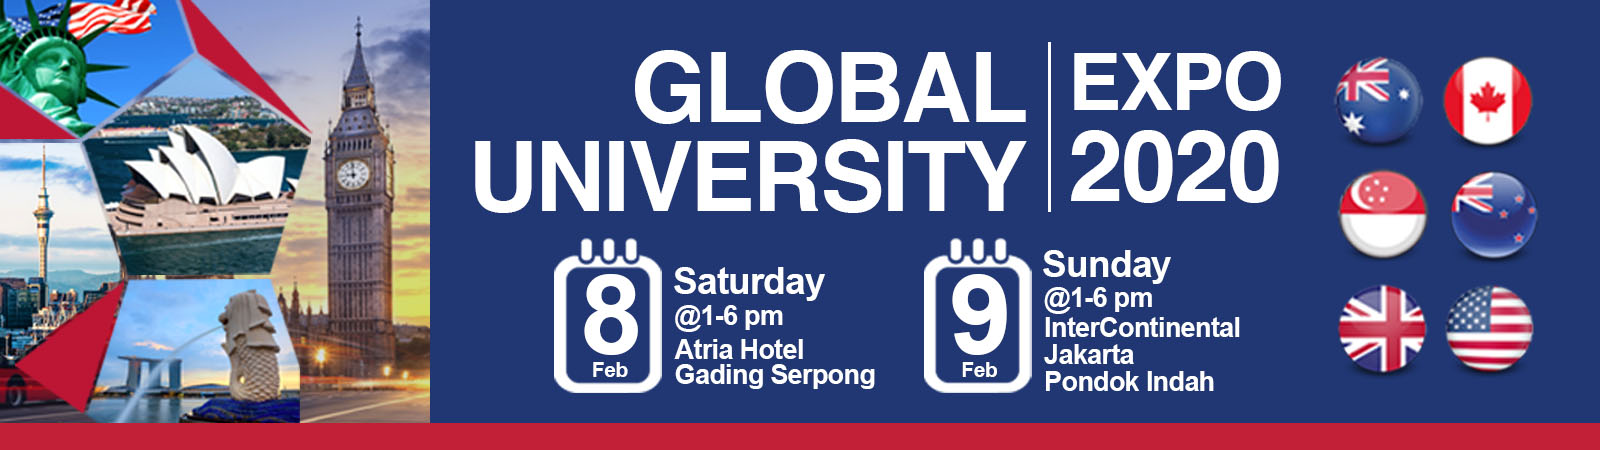 global uni expo 2020